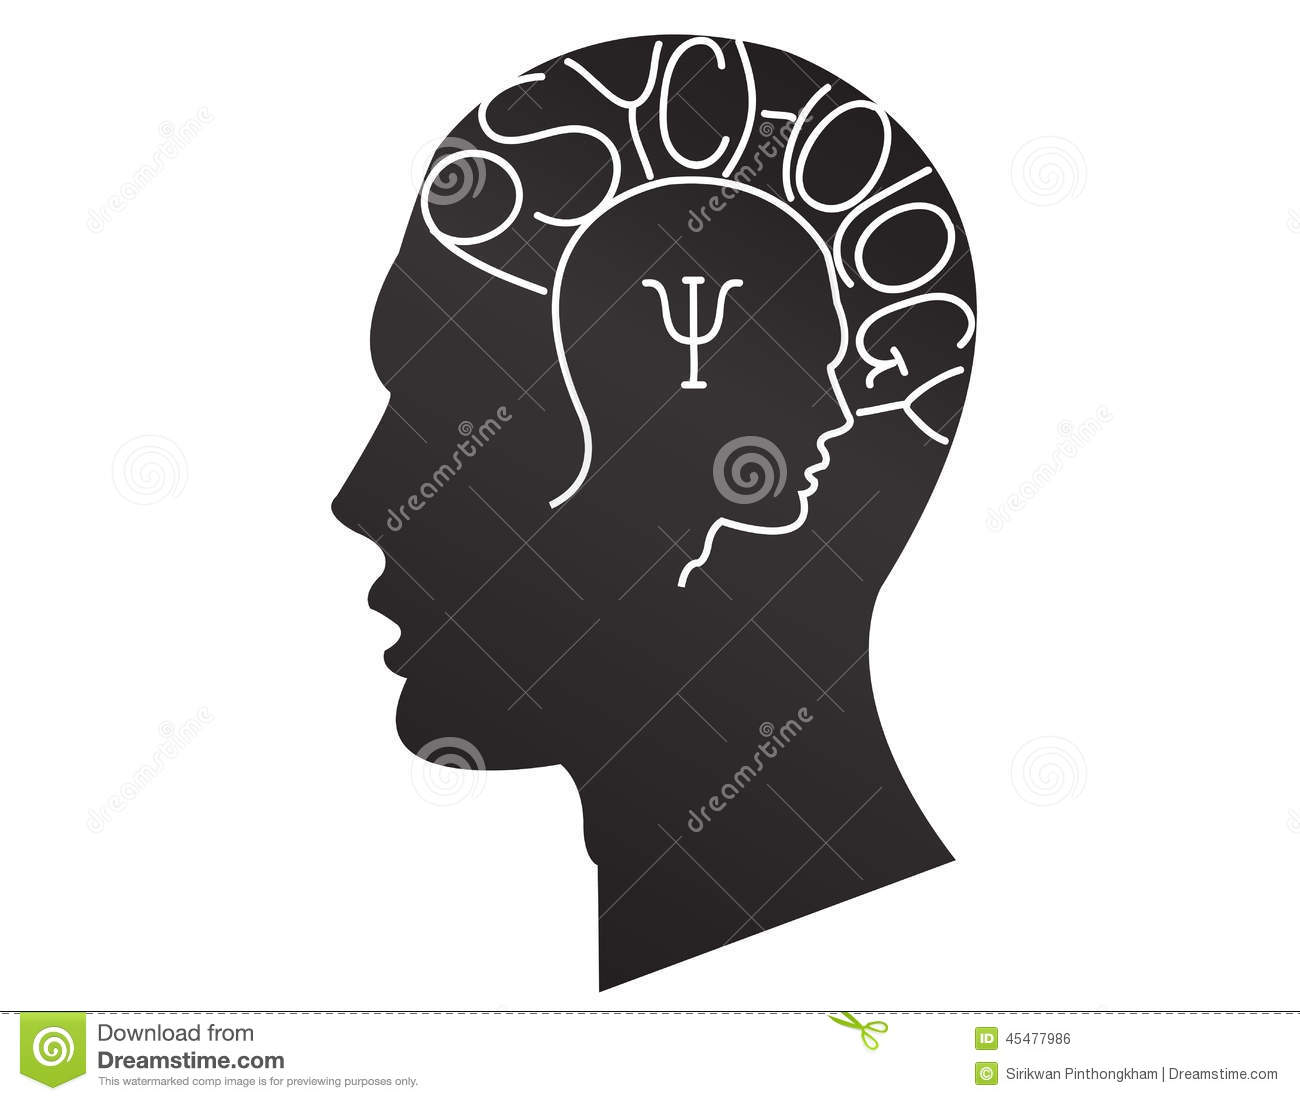 Psychology Stock Vector - Image: 45477986